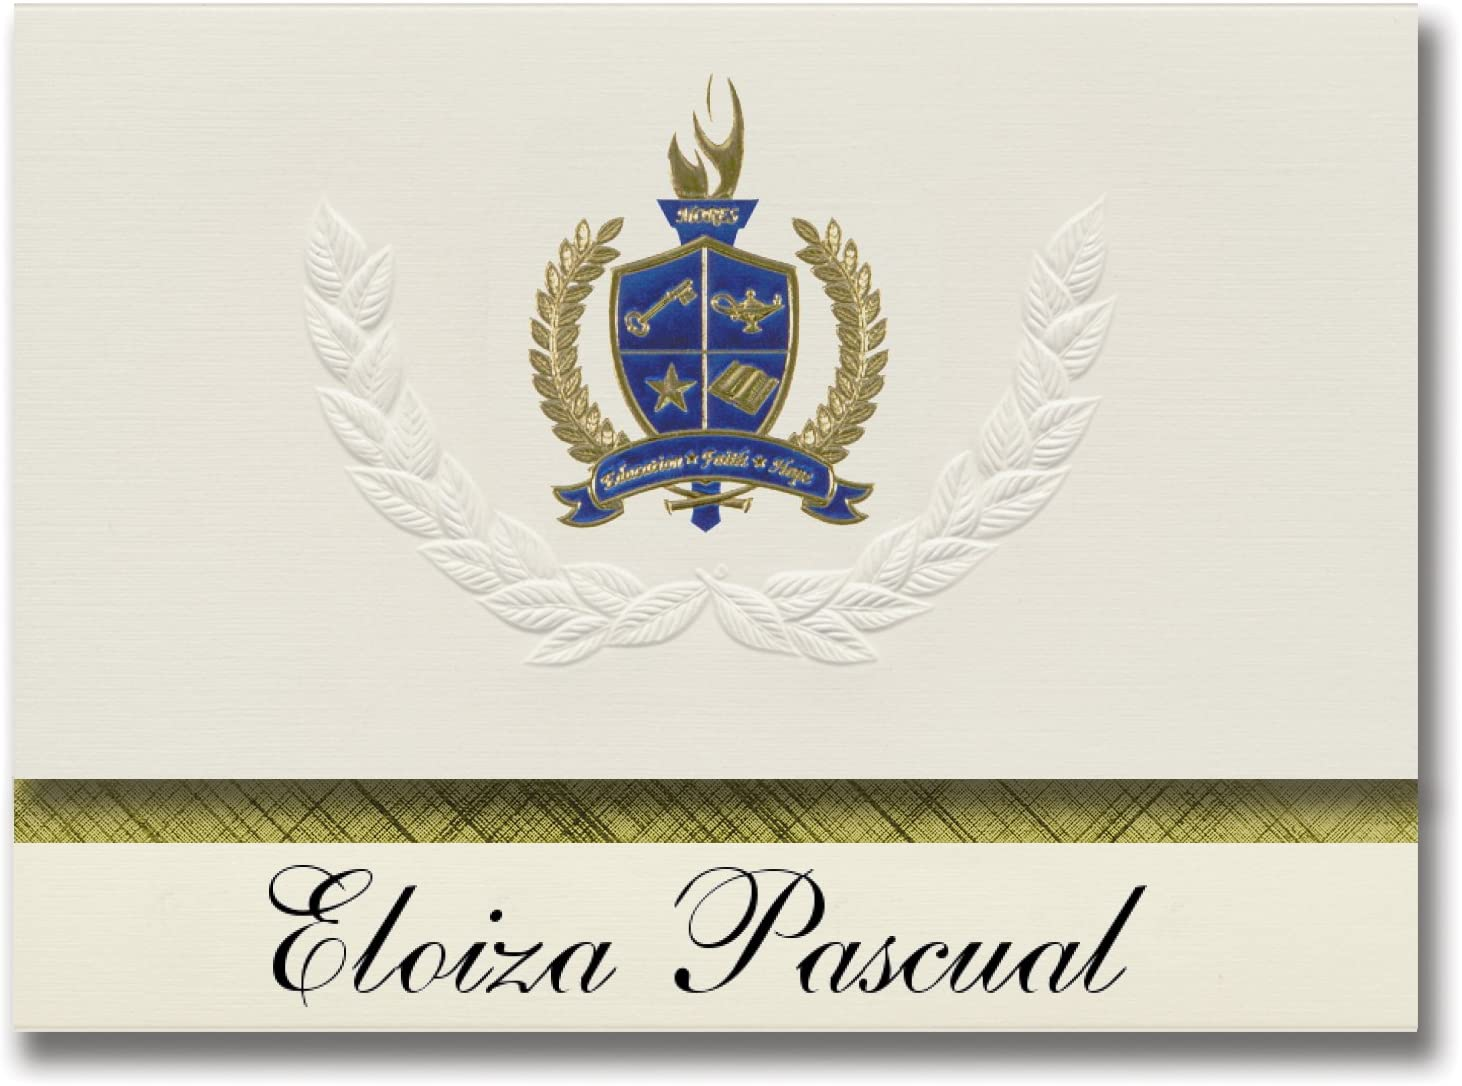 Signature Announcements Eloiza Pascual (Caguas, PR) Graduation Announcements, Presidential style, Elite package of 25 with Gold & Blue Metallic Foil seal